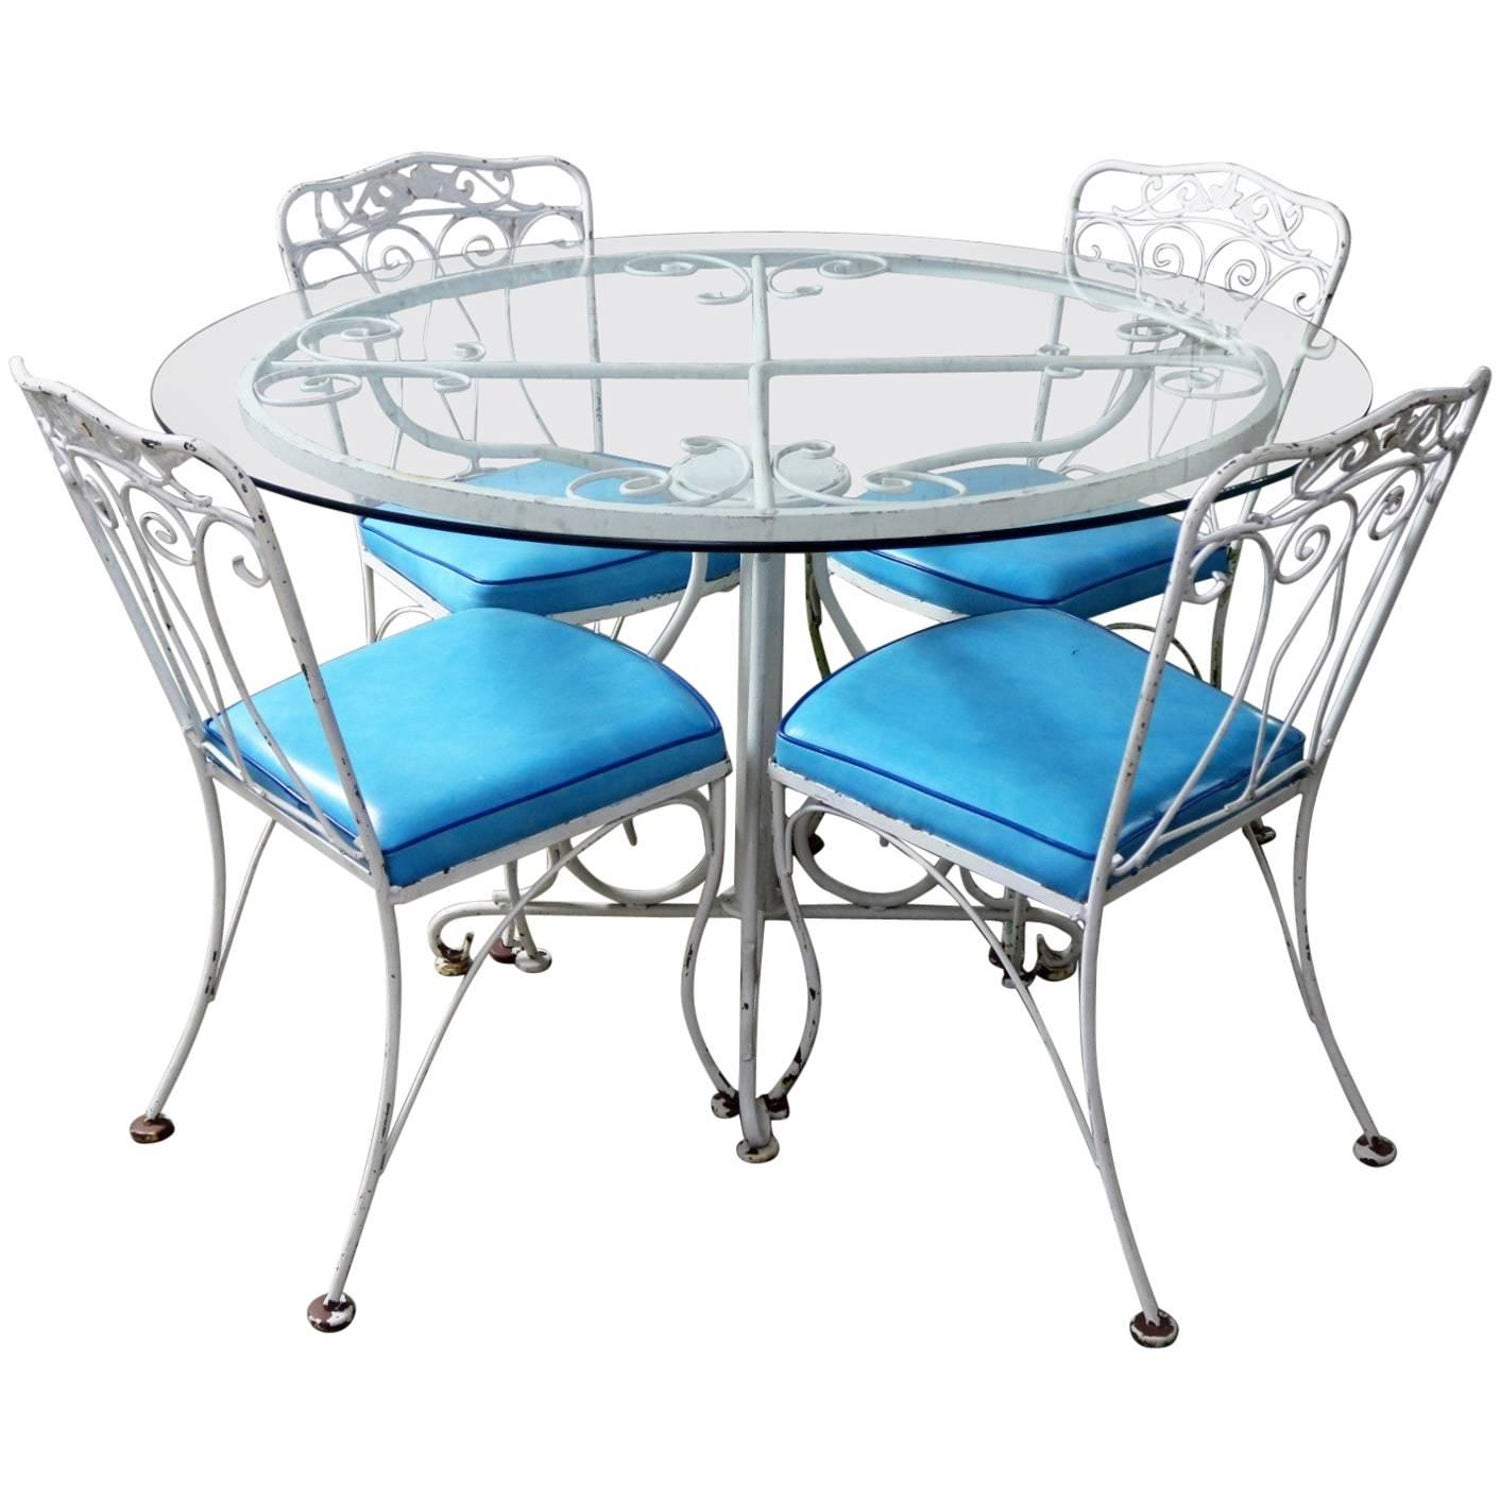 Salterini style wrought iron patio set round table four chairs turquoise seats for sale at 1stdibs